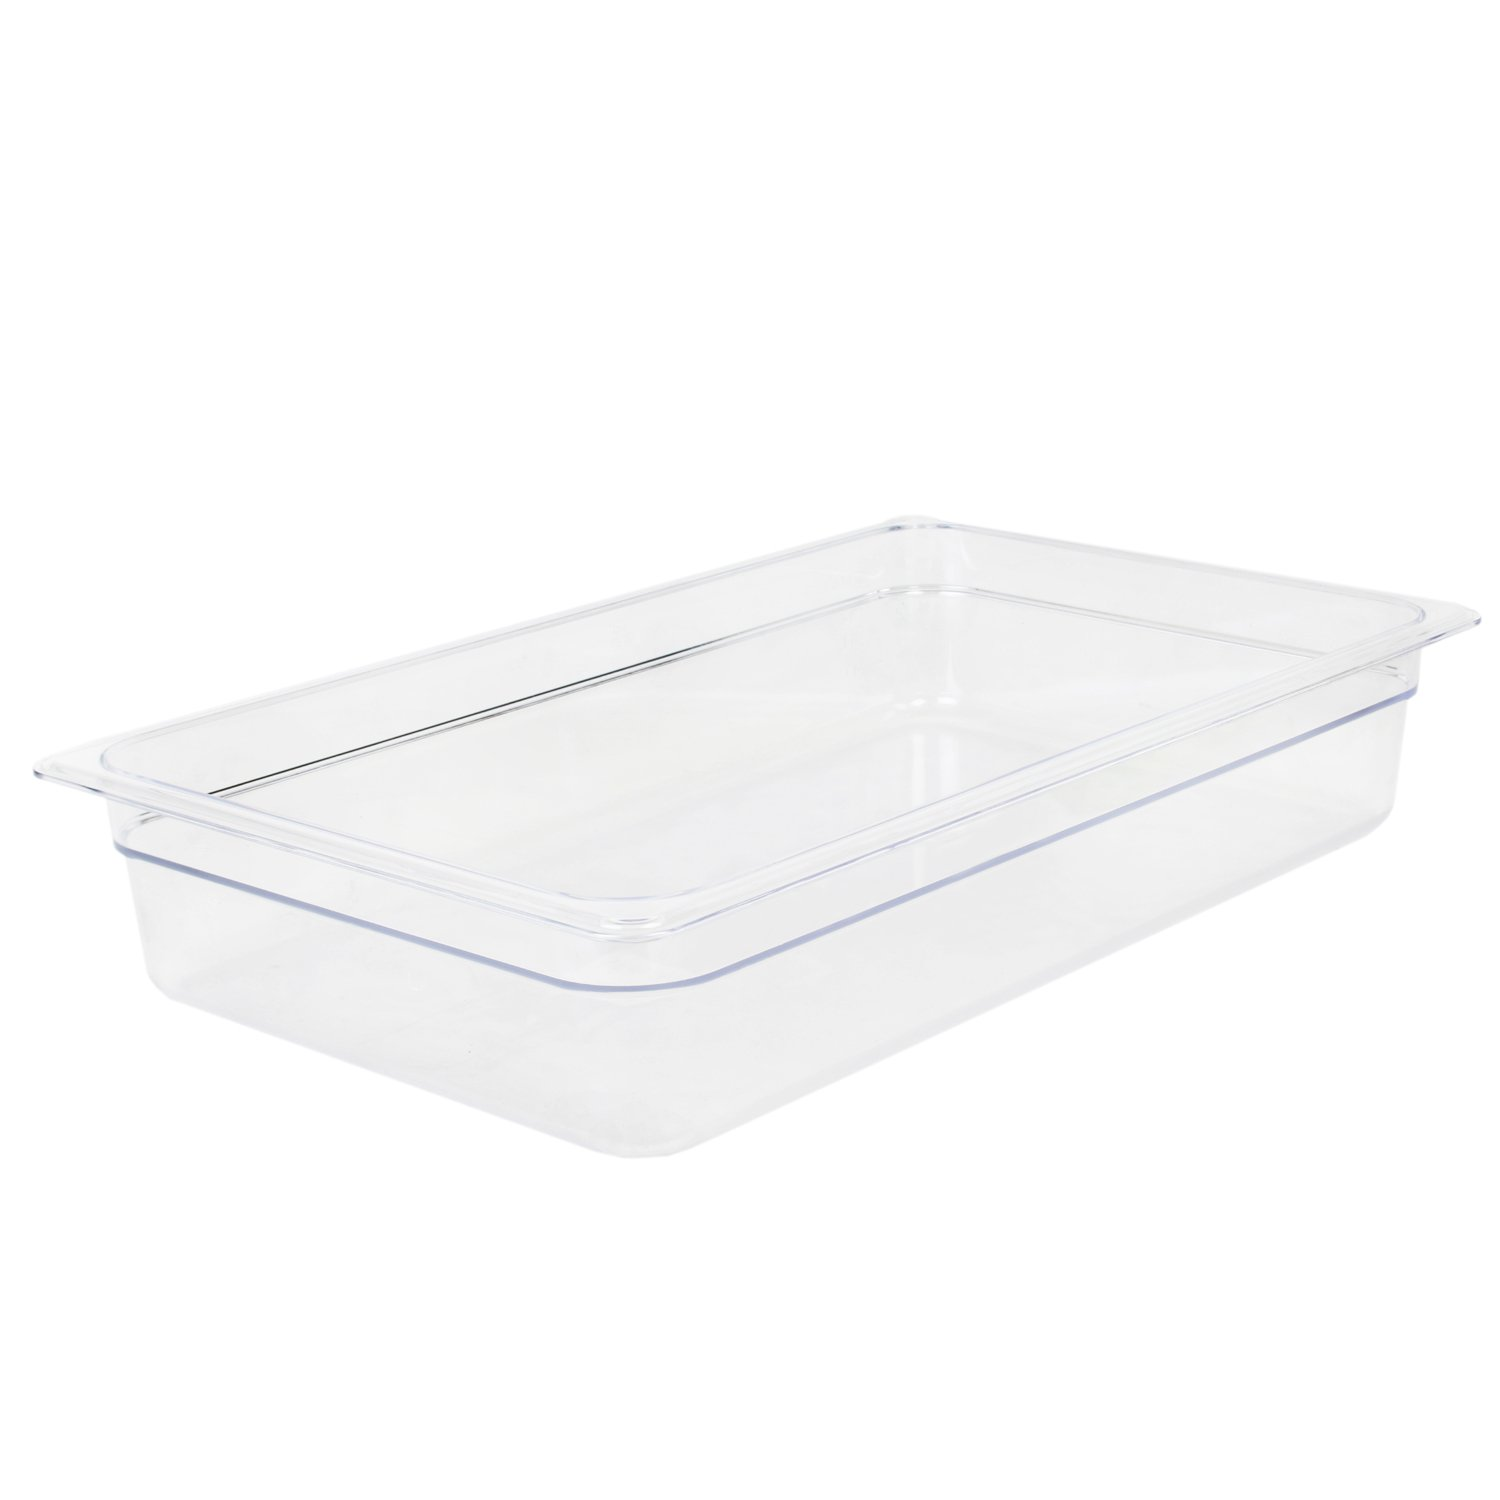 Excellante 849851006942 Deep Polycarbonate Food Pan, 4'', Full Size